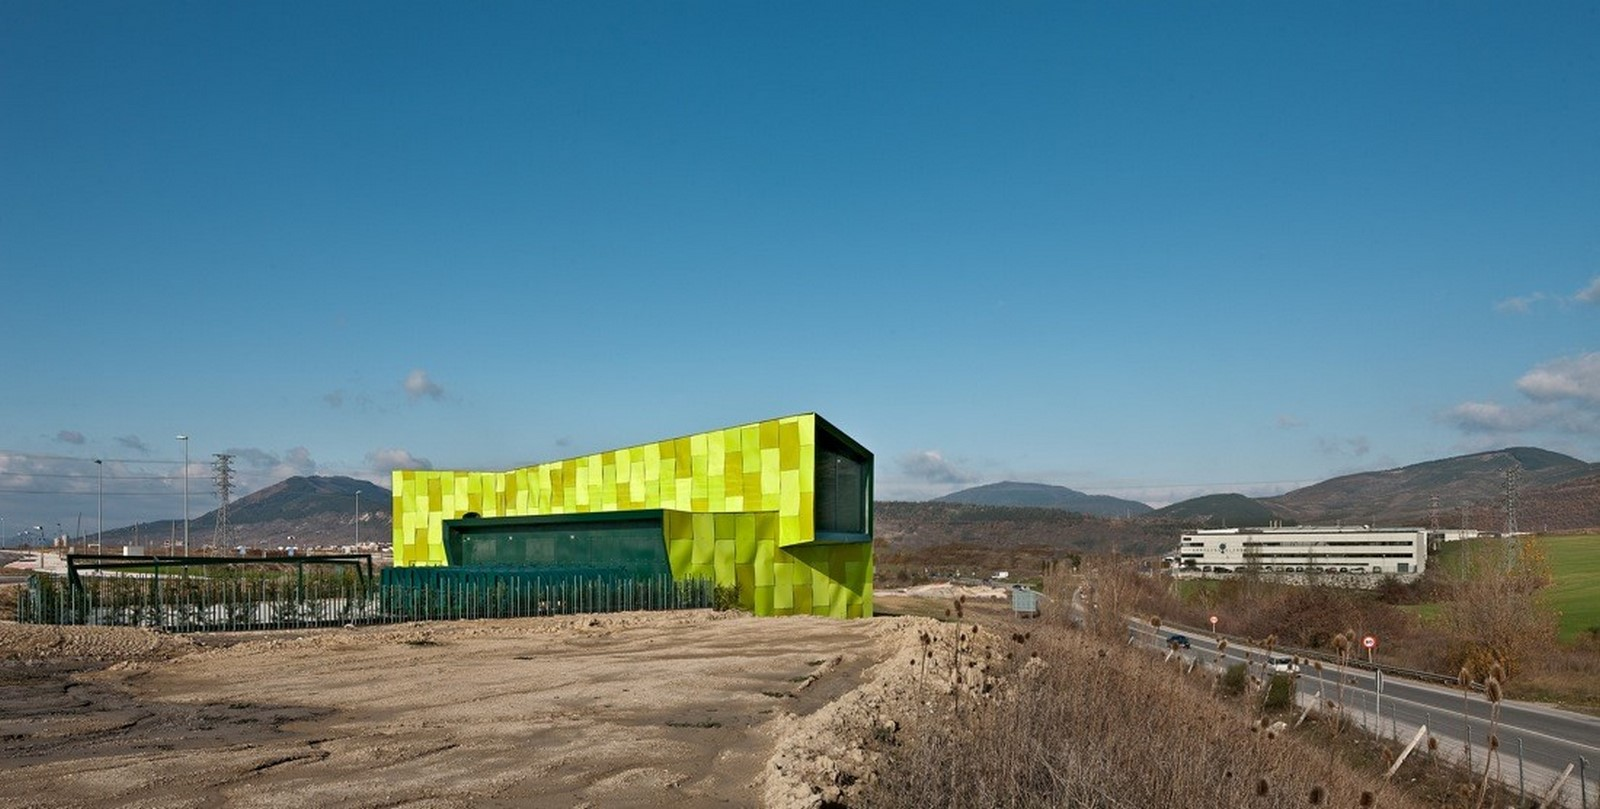 Urban Solid Waste Collection Central in Spain, Vaillo + Irigaray - Sheet1